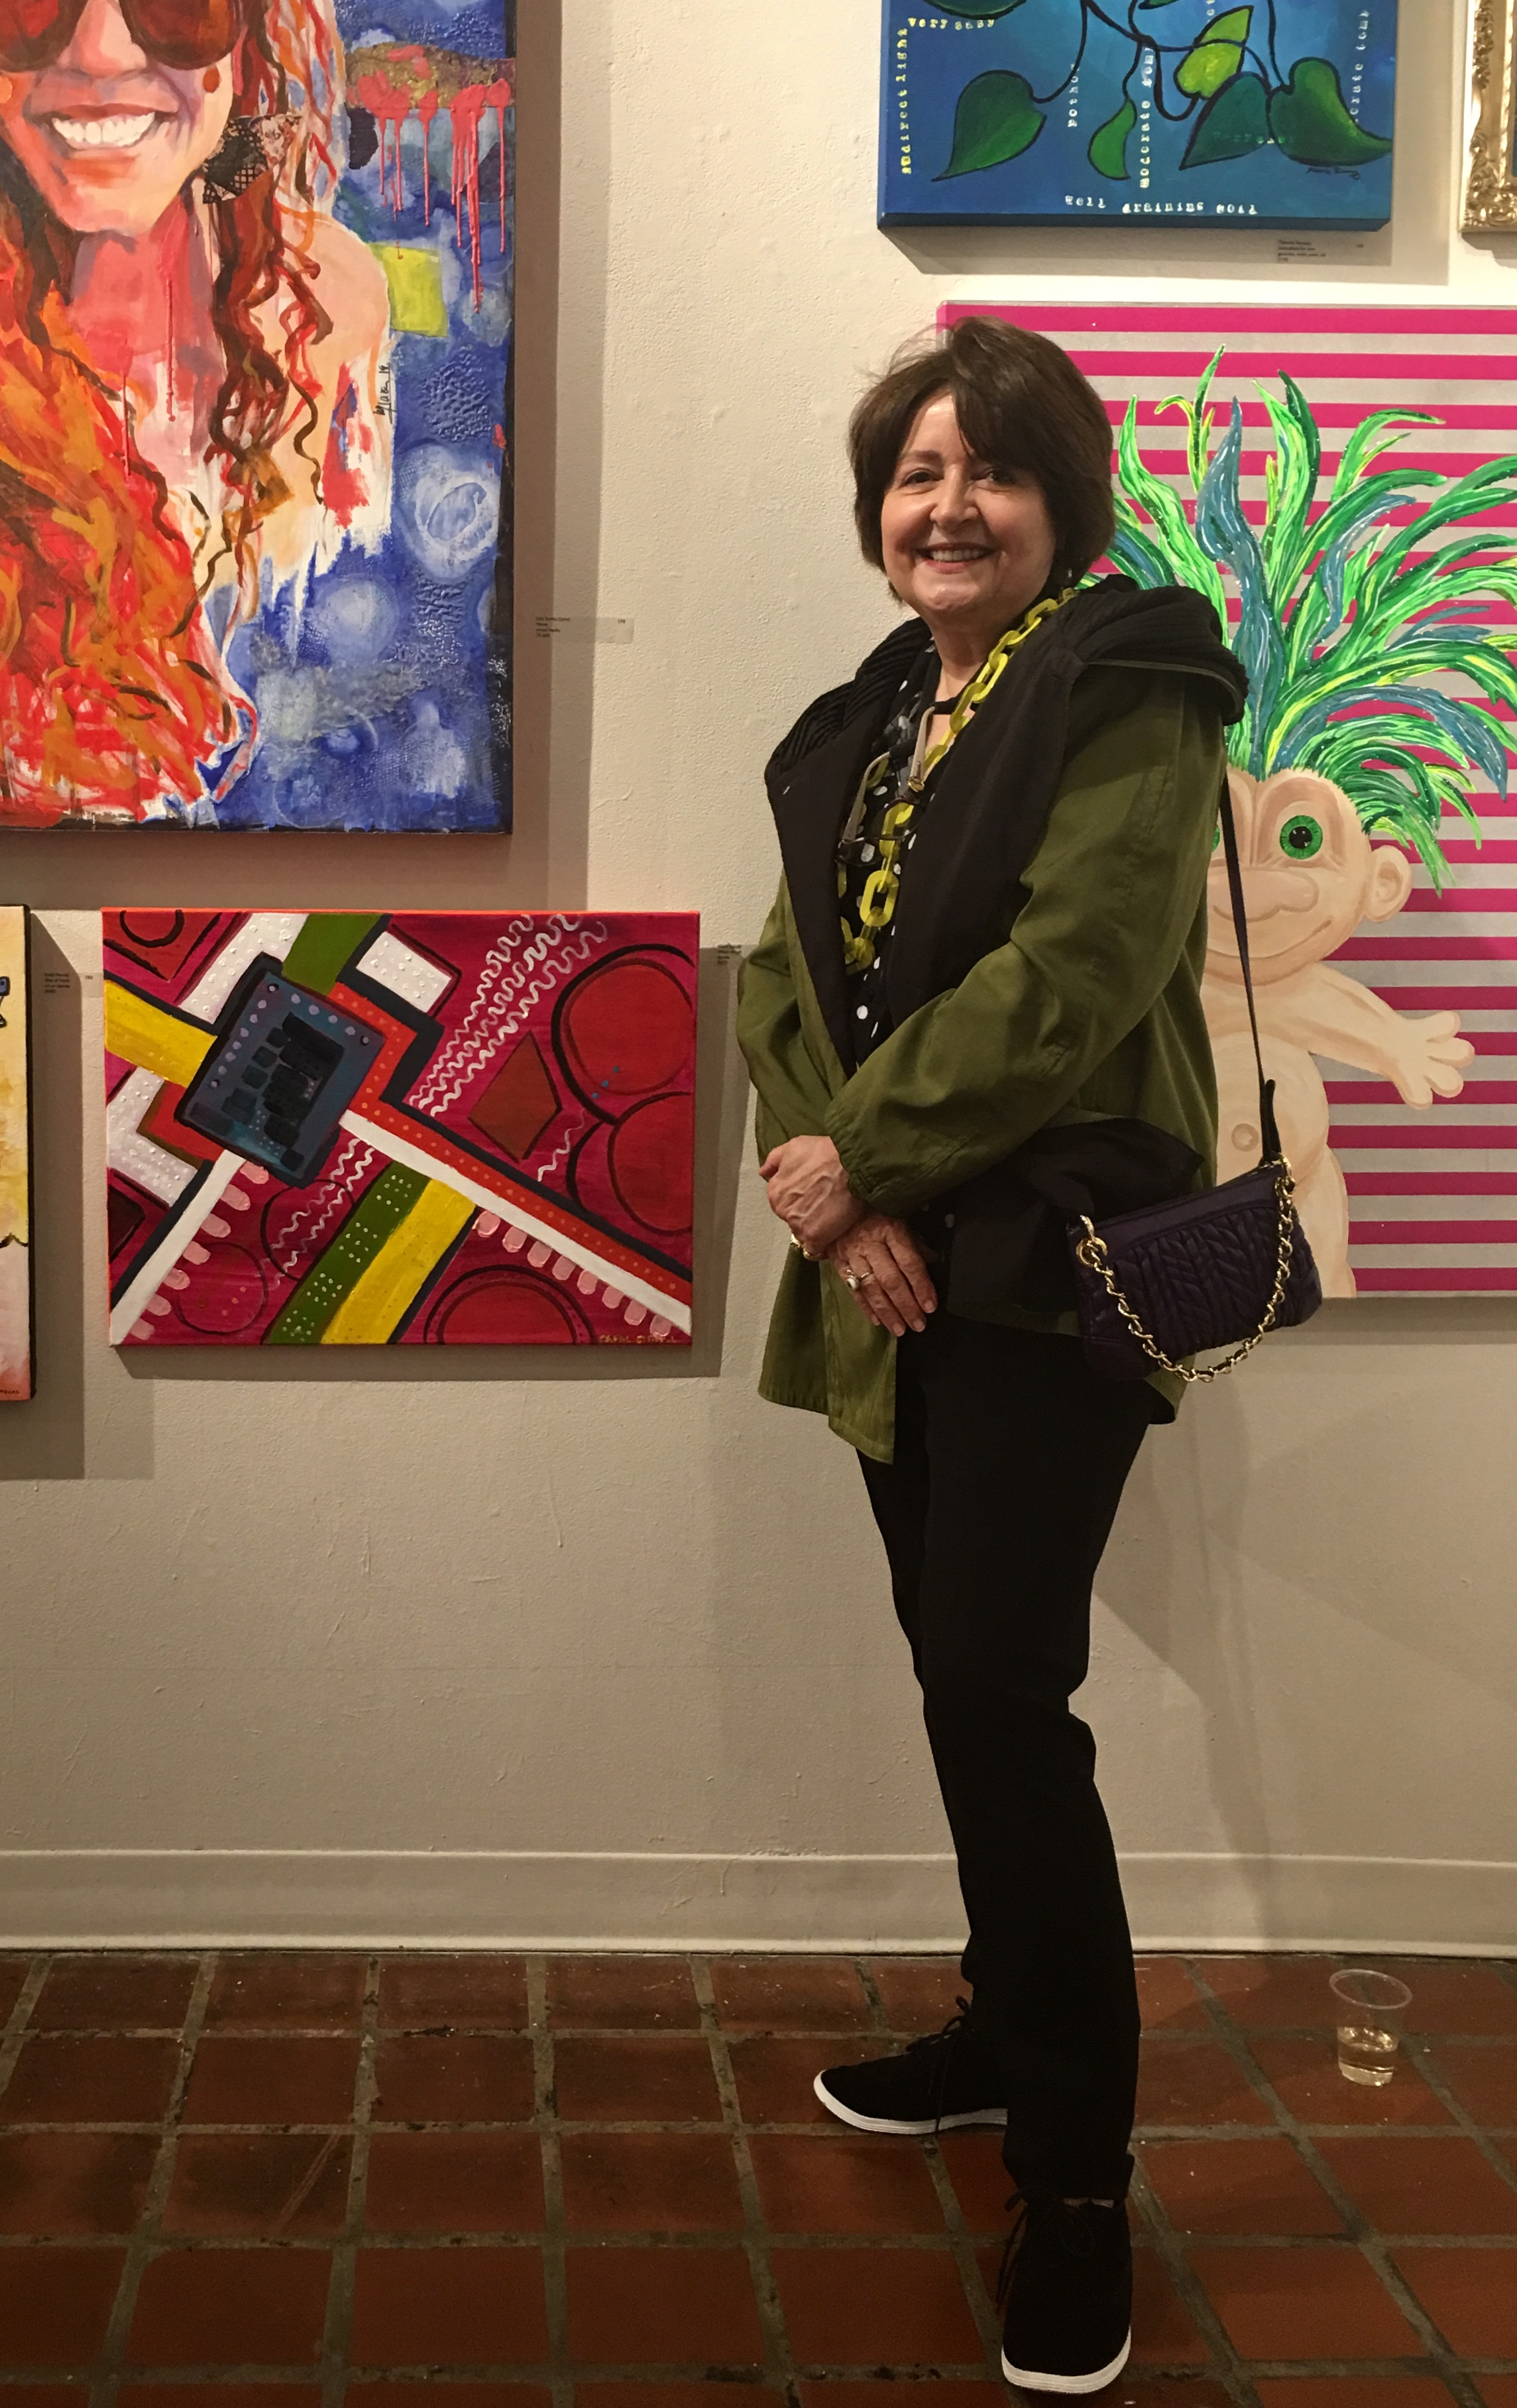 "Me and my painting tonight (May 17, 2018) at the Pre-Jury Viewing Party for the exhibition FRESH at ArtSpace. Mine is at the lower left in the photo, and presently is located in the first floor exhibition room at ArtSpace. It is called ""Which Way,"" 18 x 24, acrylic on canvas and will show at ArtSpace through May 26. After that, Jennifer Dasal, Associate Curator of Contemporary Art at the NC Museum of Art, will select a few for an exhibition running June 1-29. I'm not counting on that, so if you want to see my painting at ArtSpace, get there by May 26! Meanwhile, all work sold raises funds for the ArtSpace Inspiration Fund - at least 50% of the proceeds of sales. And all work in the preview show, whether juried in or not, is already available for sale at  bit.ly/artspacefreshlook2018 . I enjoyed looking at over 200 donated works this evening."